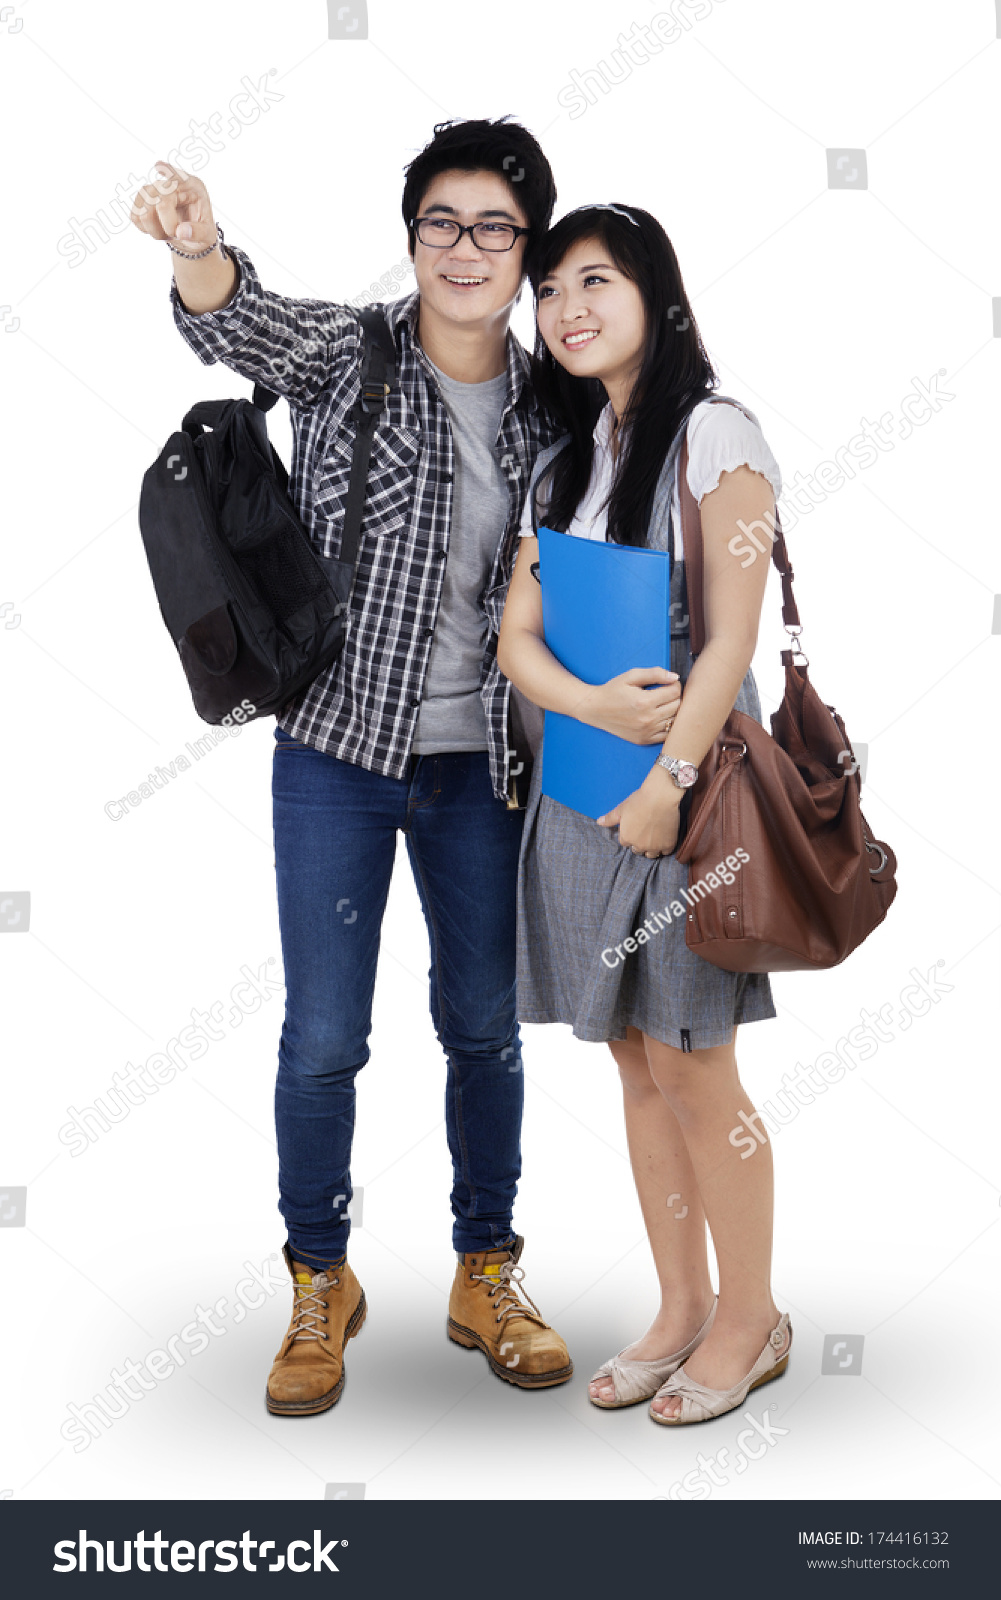 Happy Trendy College Students With Bags And Books Pointing At Copy Space